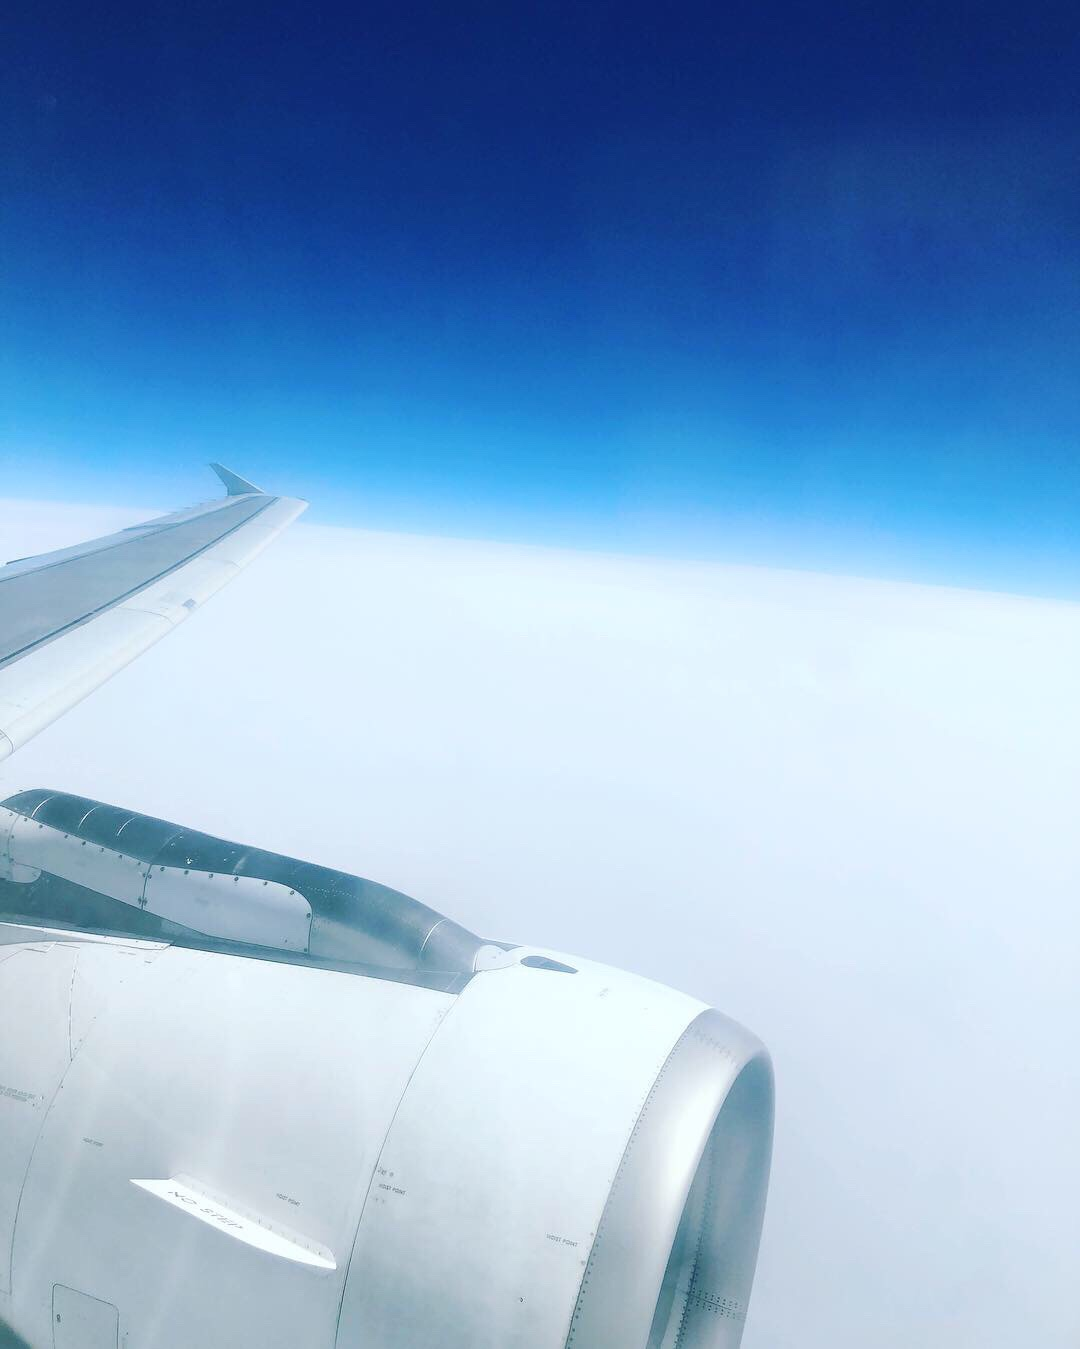 Out the window above the clouds Iberia flight